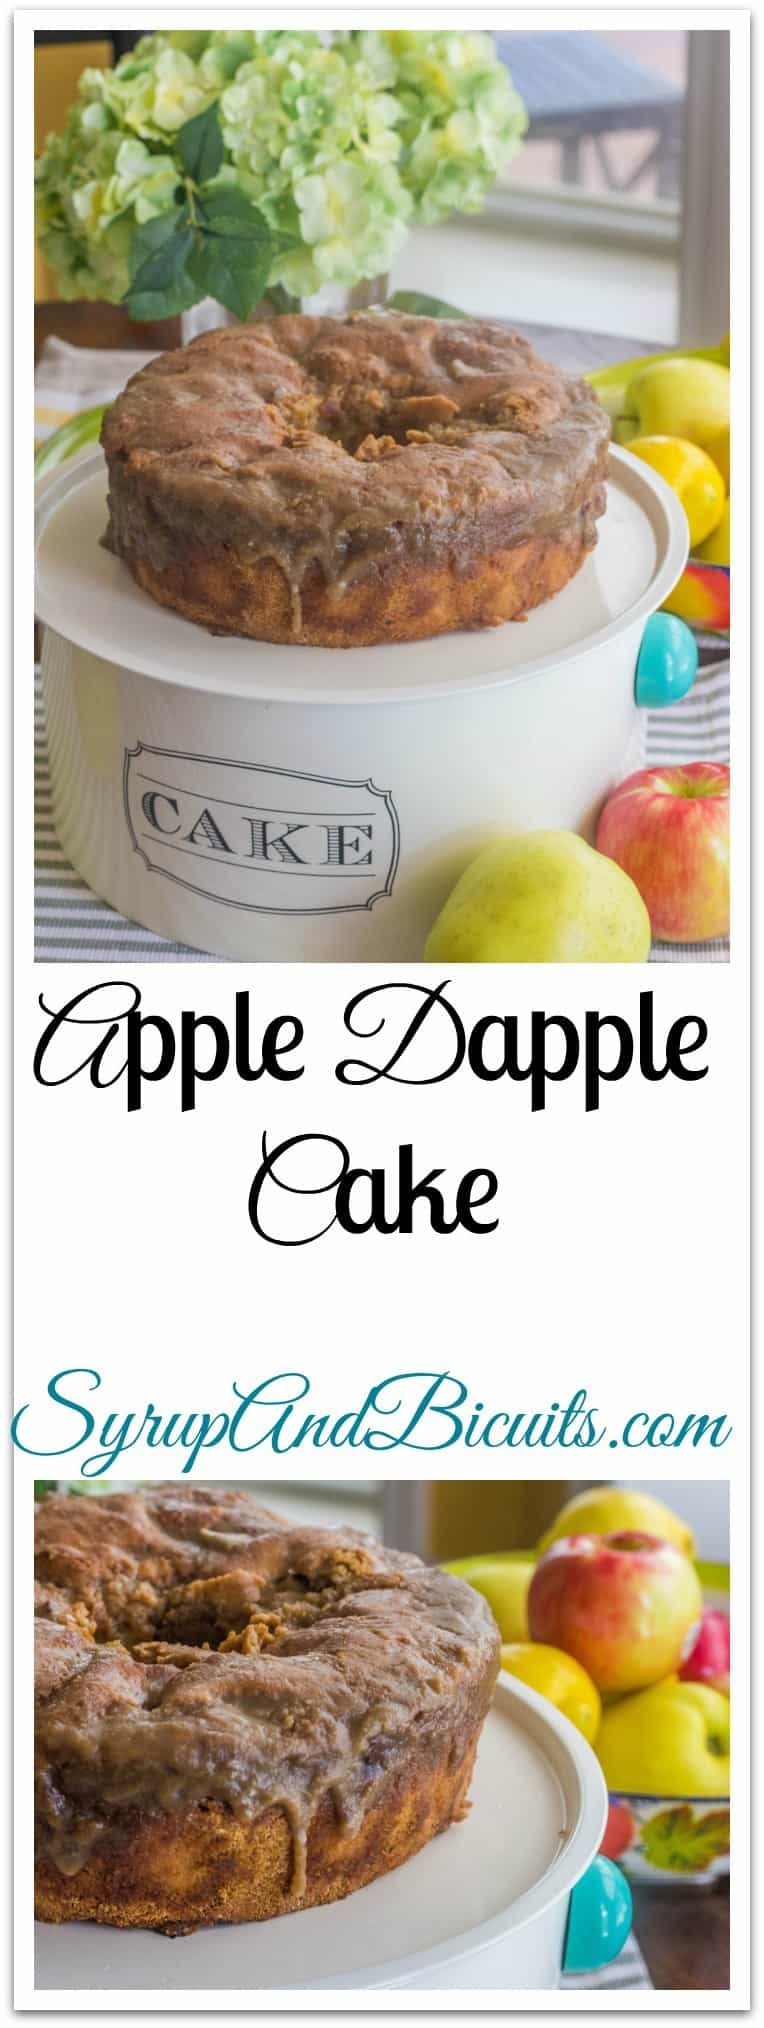 Apple Dapple Cake is an old hand-me-down recipe that's been in my files for over 40 years.  It's fresh apples and chopped pecans held together with just the right amount of a cinnamon and vanilla batter. #AppleDappleCake #ApplesAndPecans